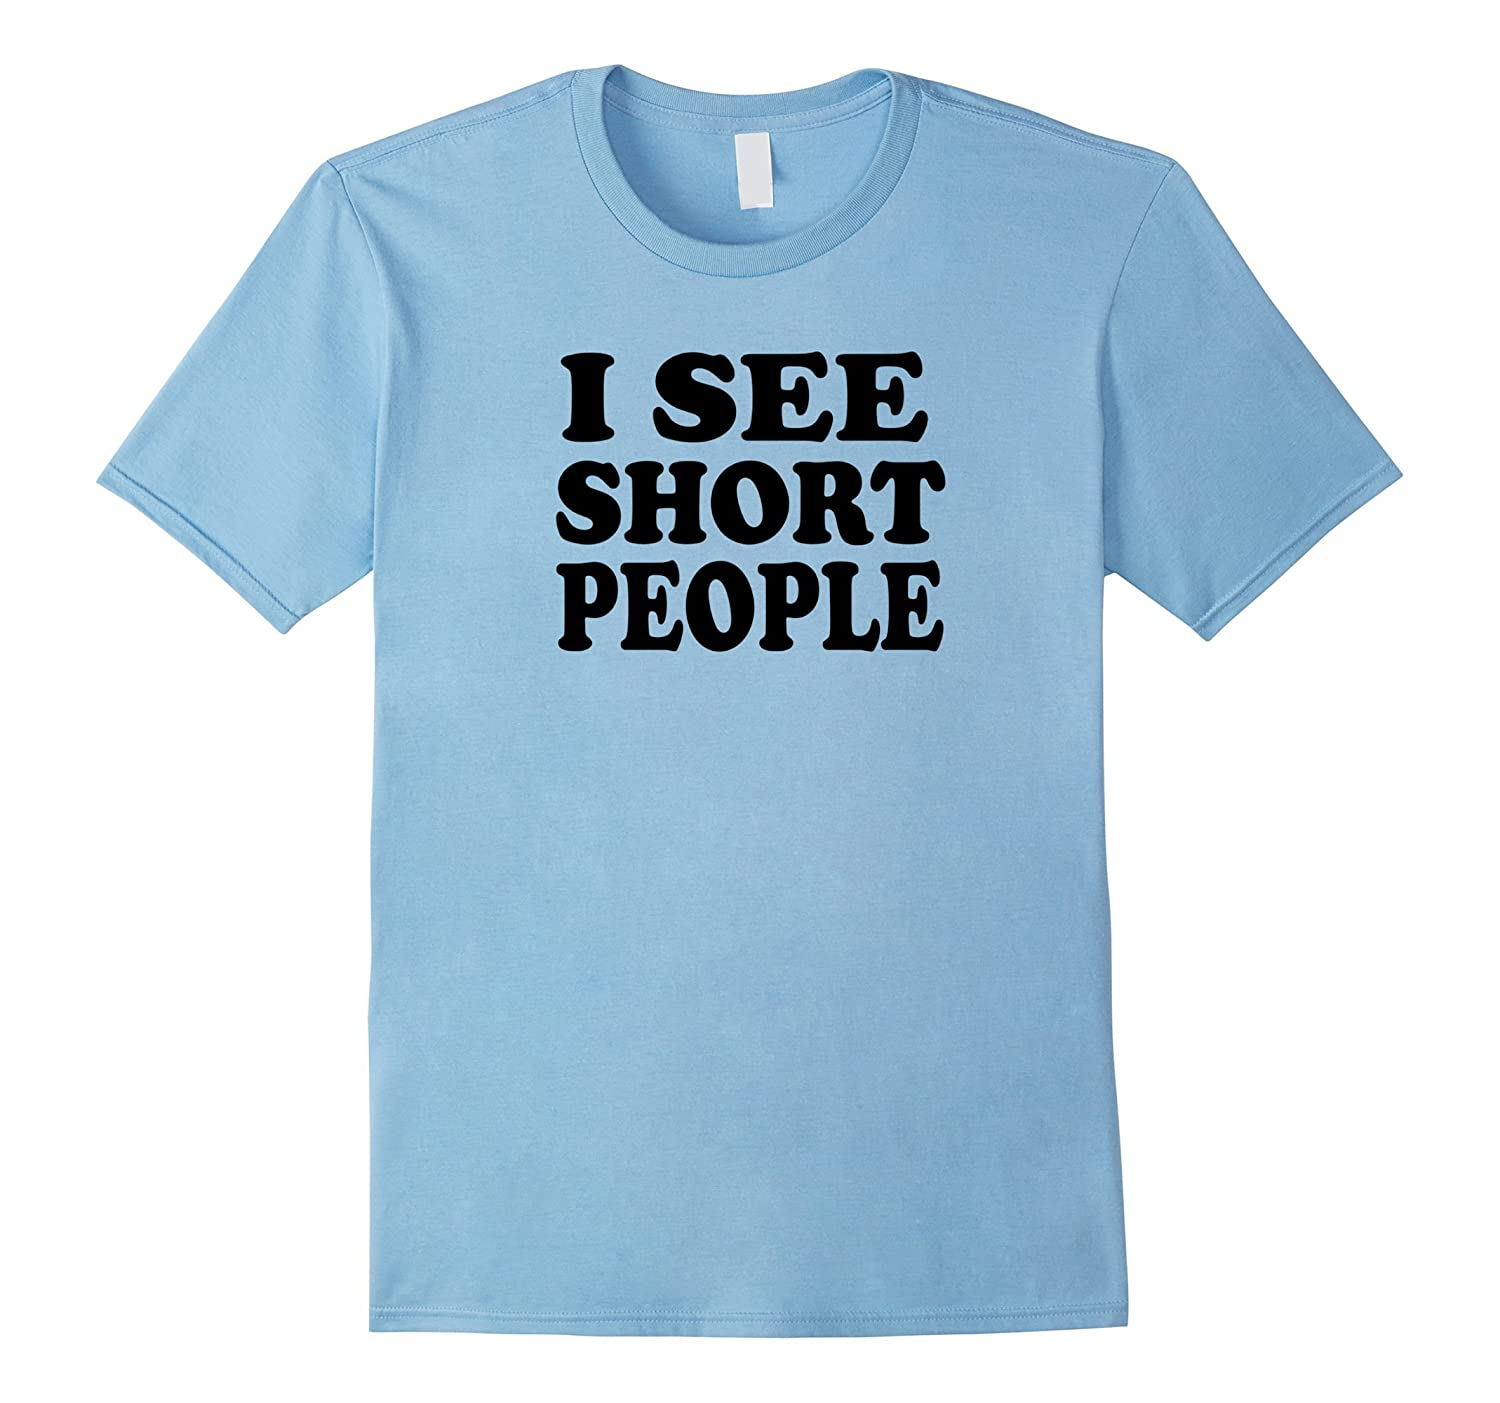 46e64f447 I see short people | Humorous Big and Tall Novelty T-shirt-ANZ ...